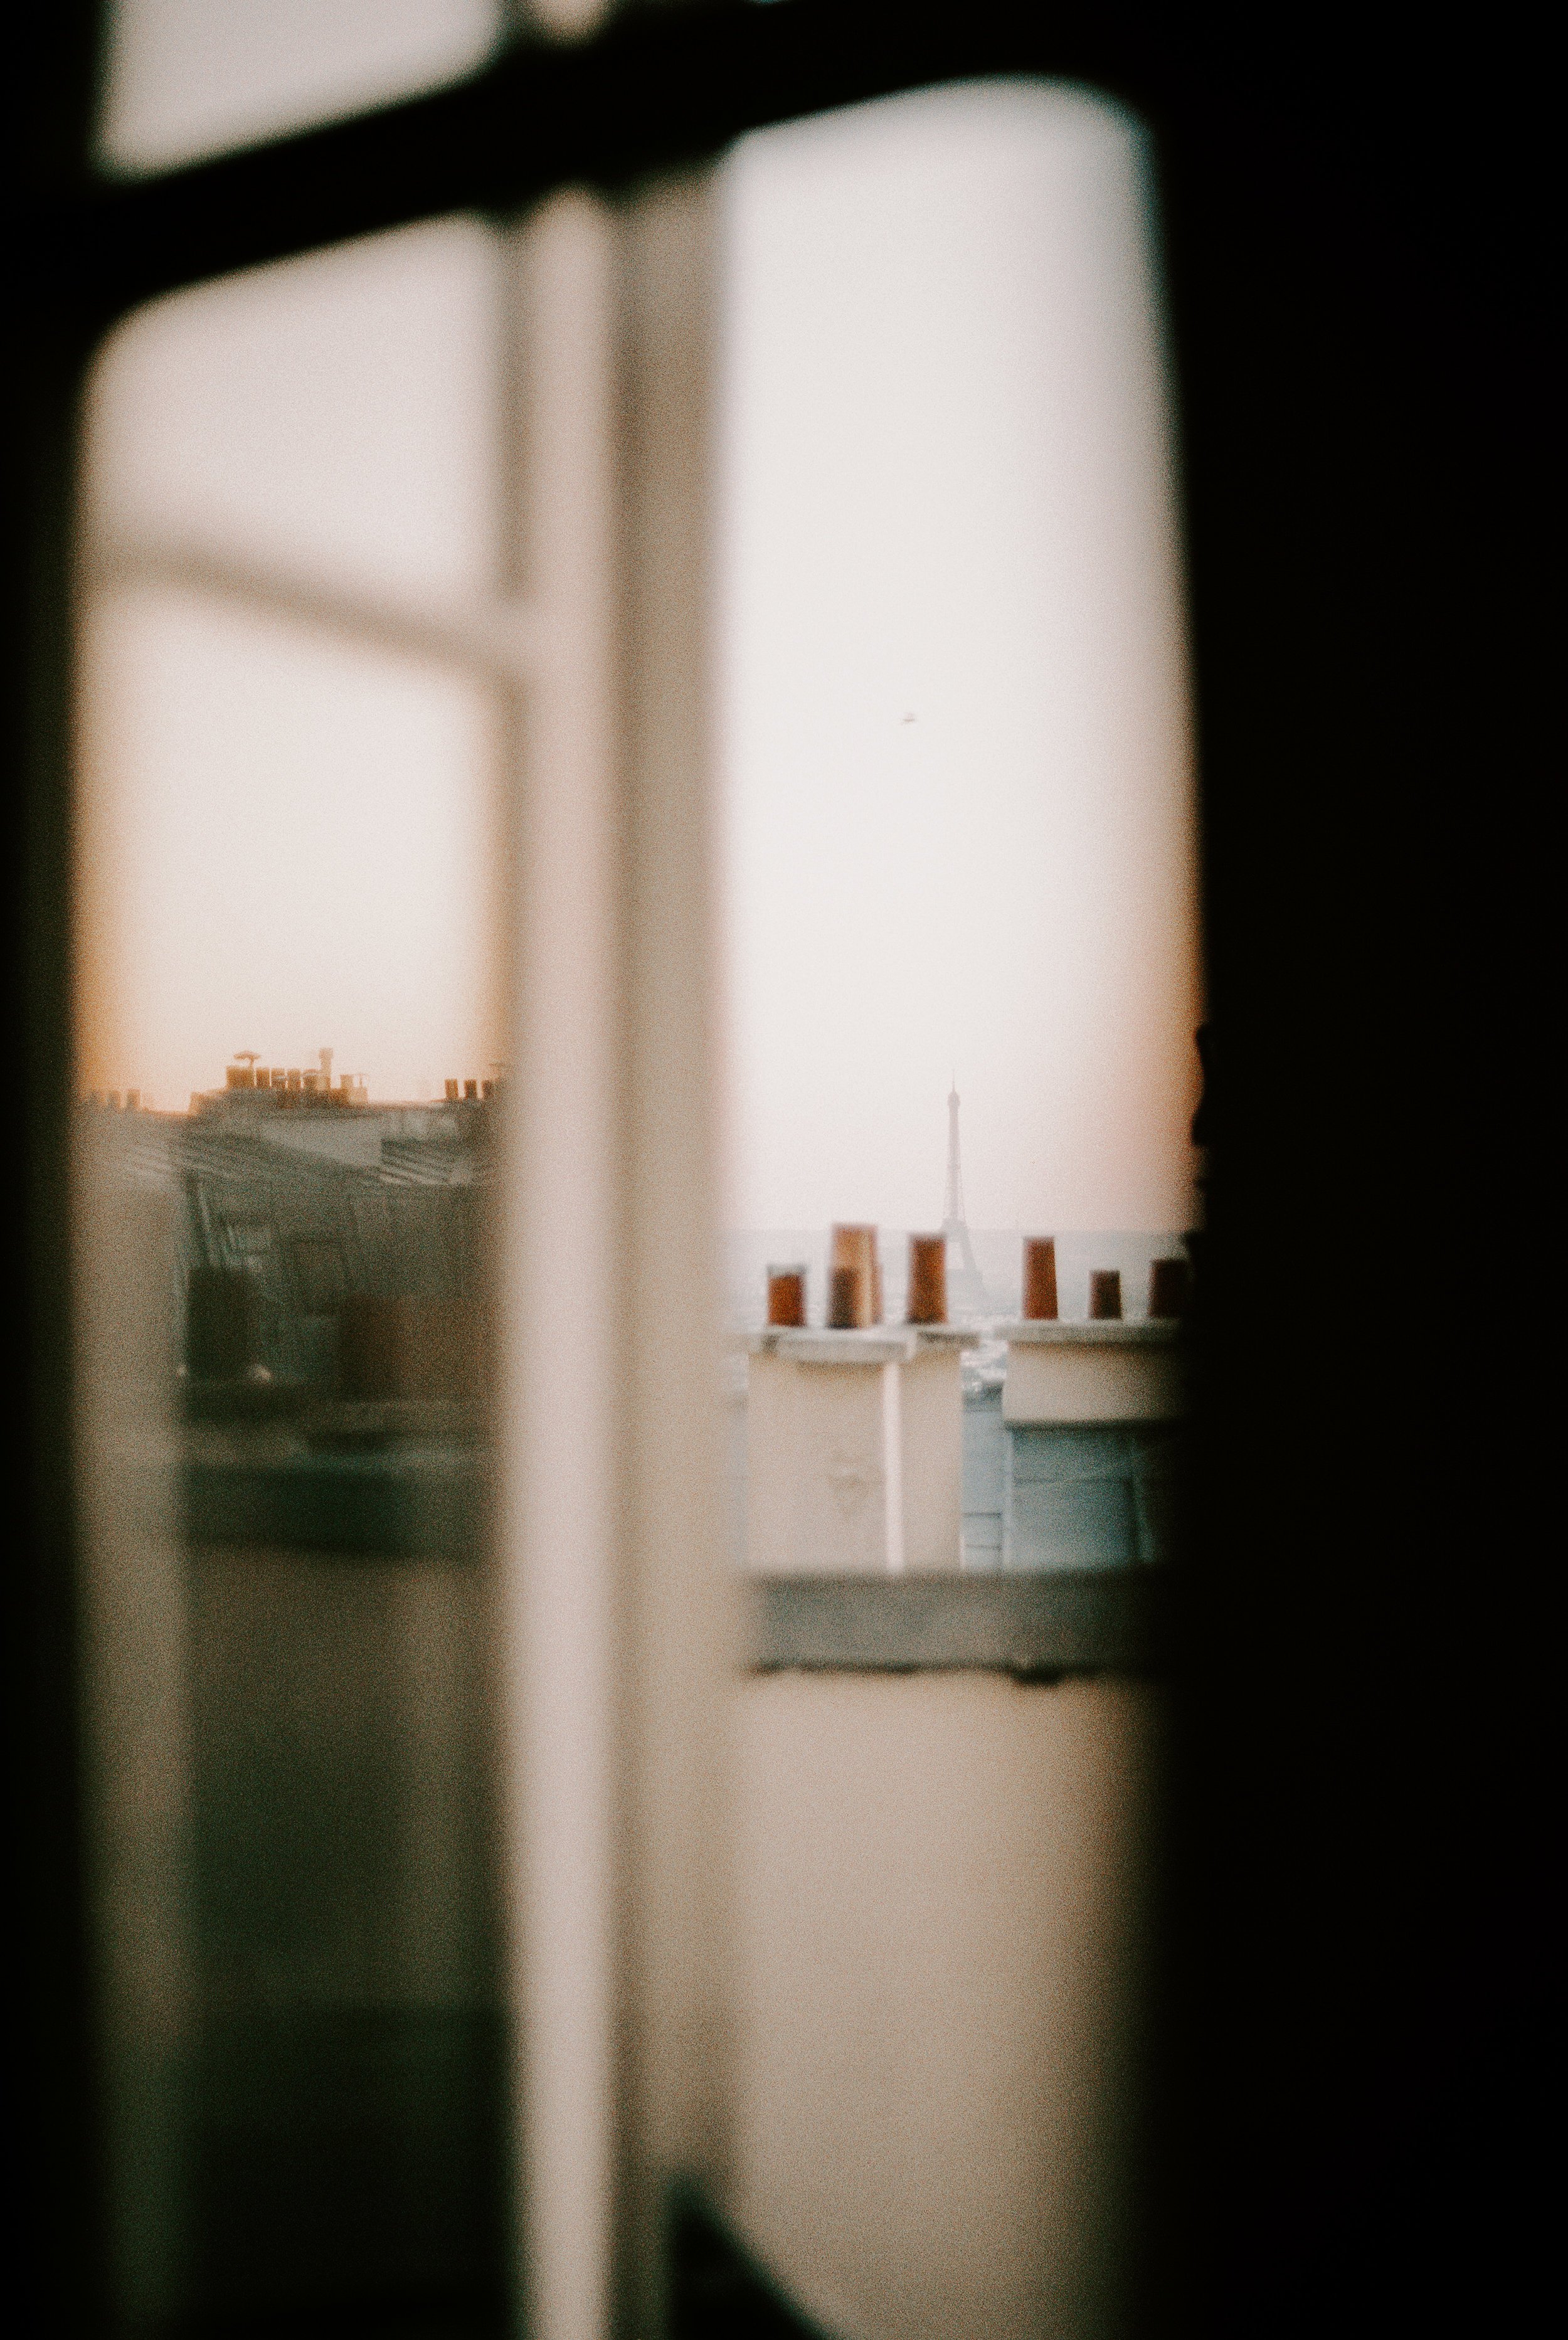 Our view from the apartment window included the Eiffel Tower at a distance. We adored this home away from home and the apartment gave us a sanctuary from the crowded, frustrating Parisian streets.